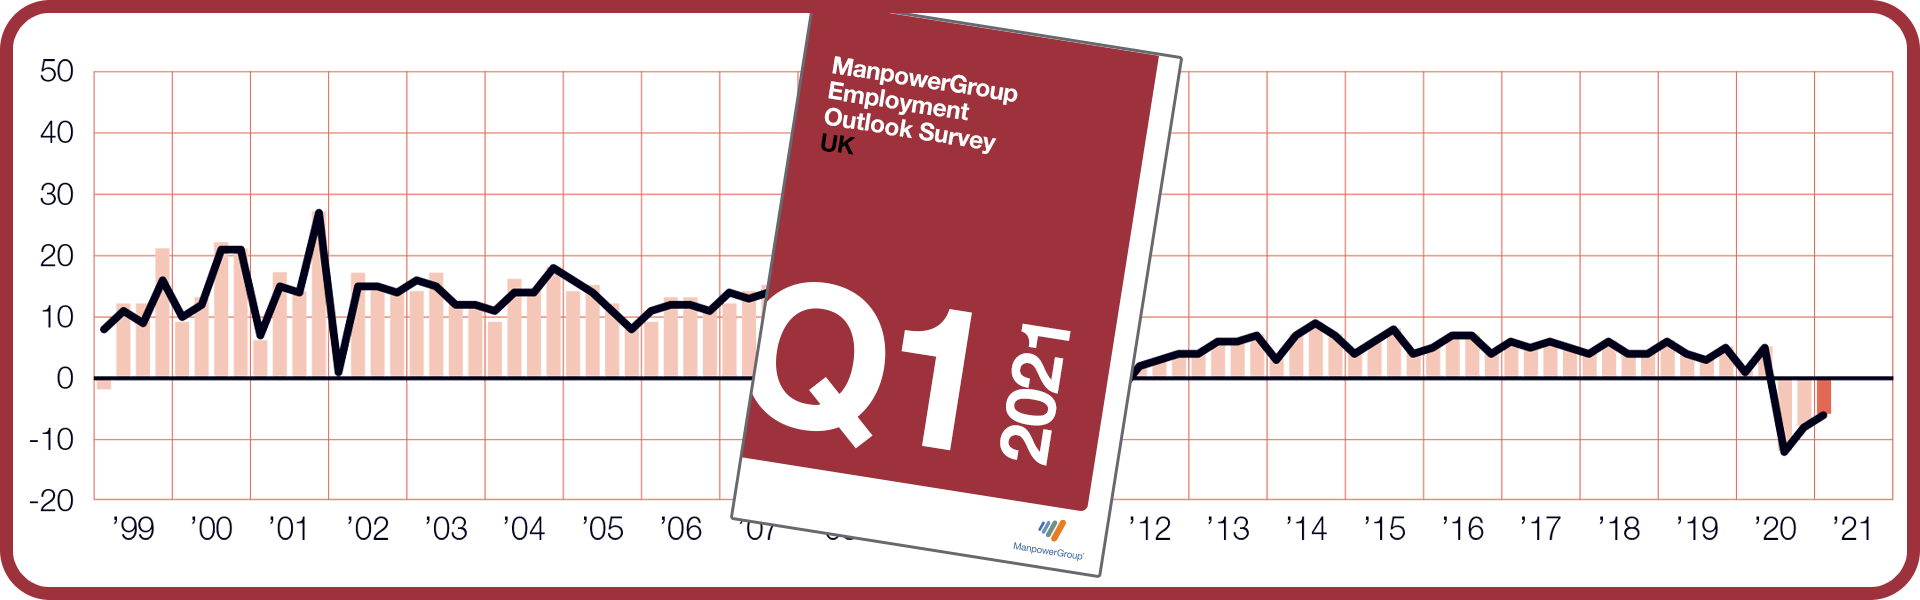 ManpowerGroup Employment Outlook Survey - Q1 2021